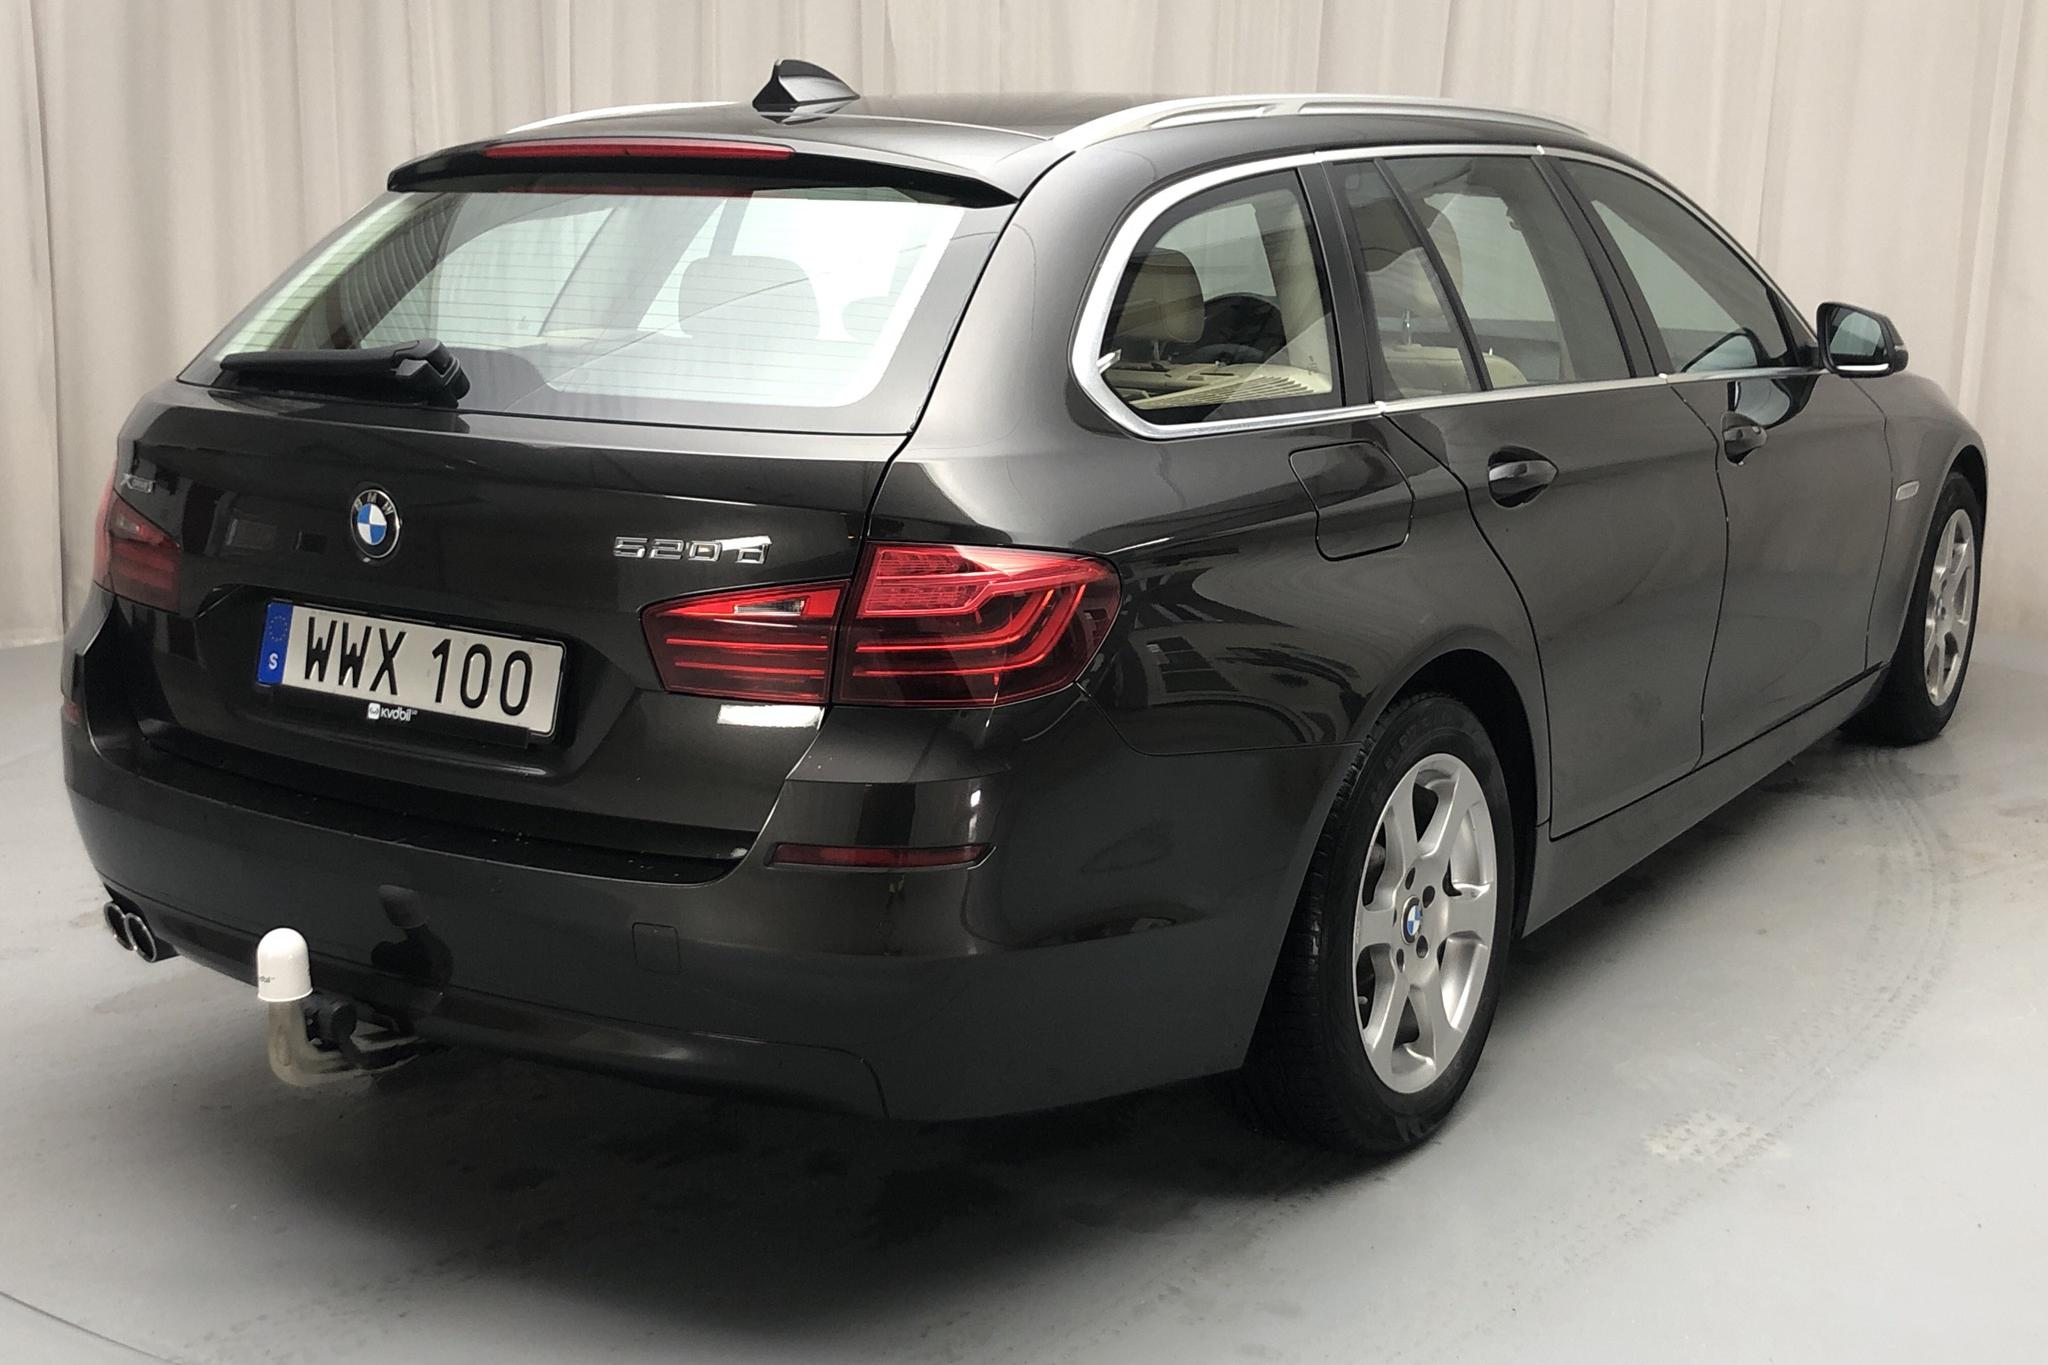 BMW 520d xDrive Touring, F11 (190hk) - 89 340 km - Automatic - brown - 2015